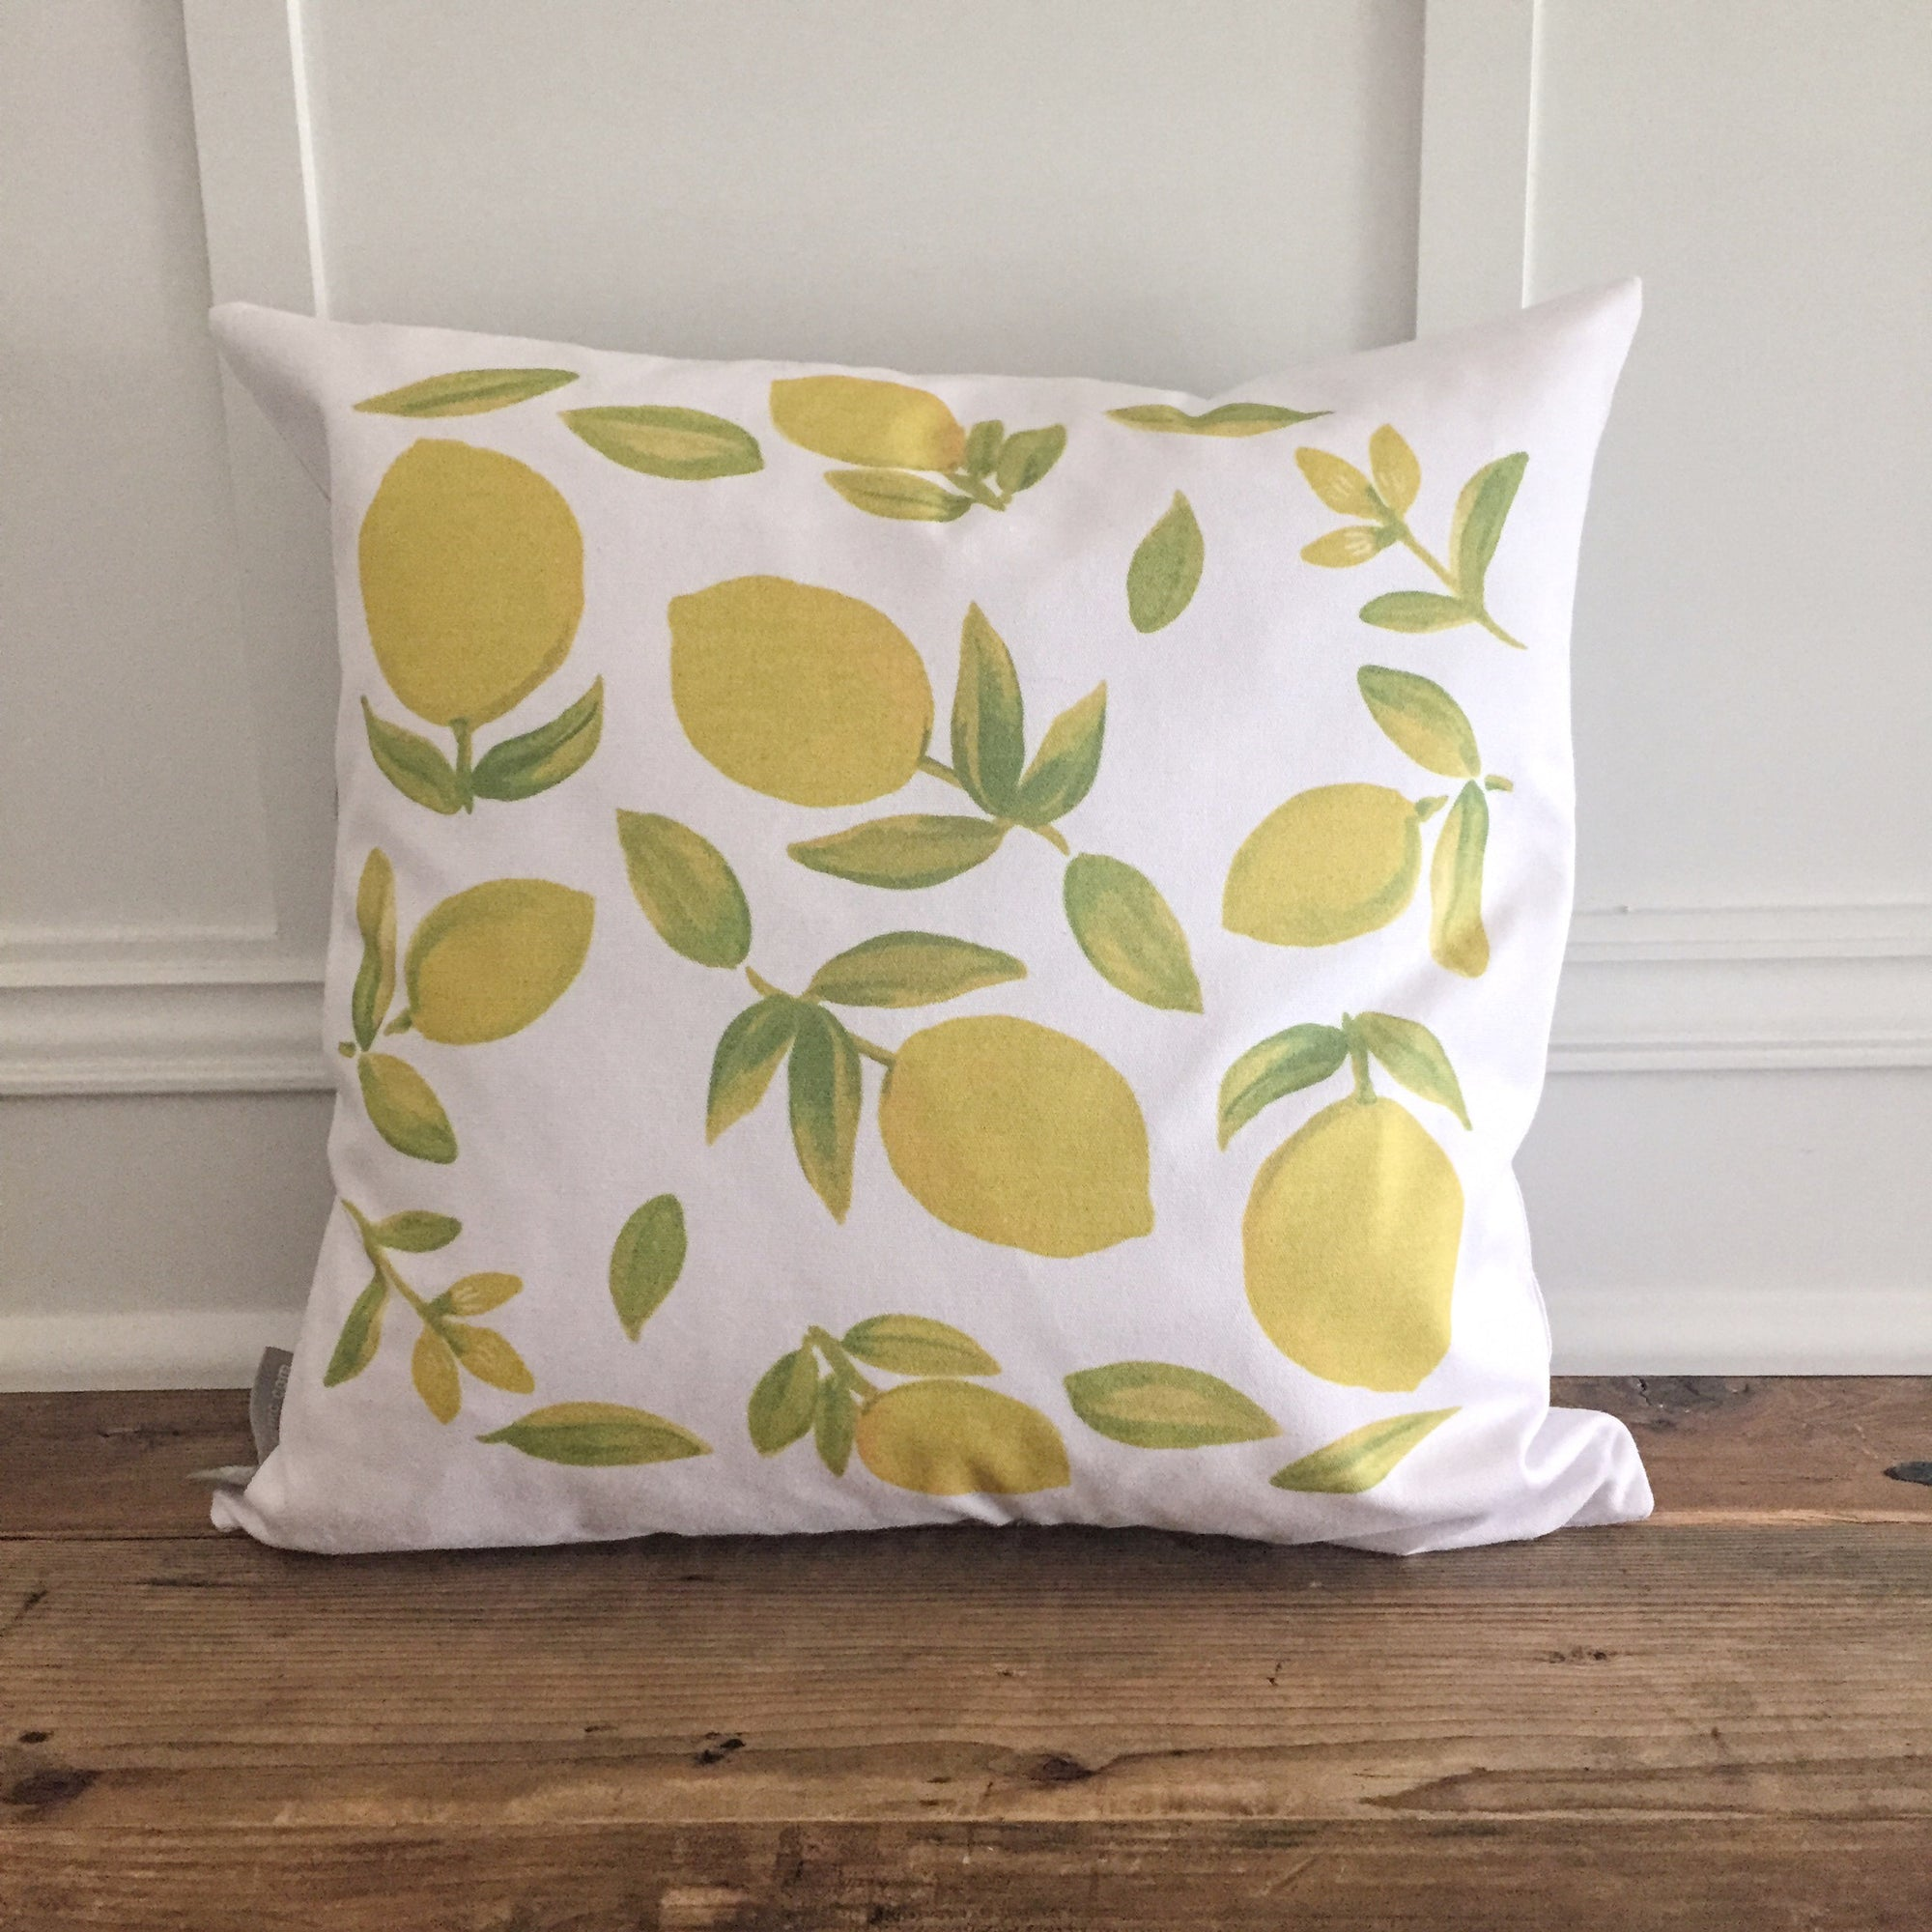 Watercolor Lemon Pillow Cover - Linen and Ivory